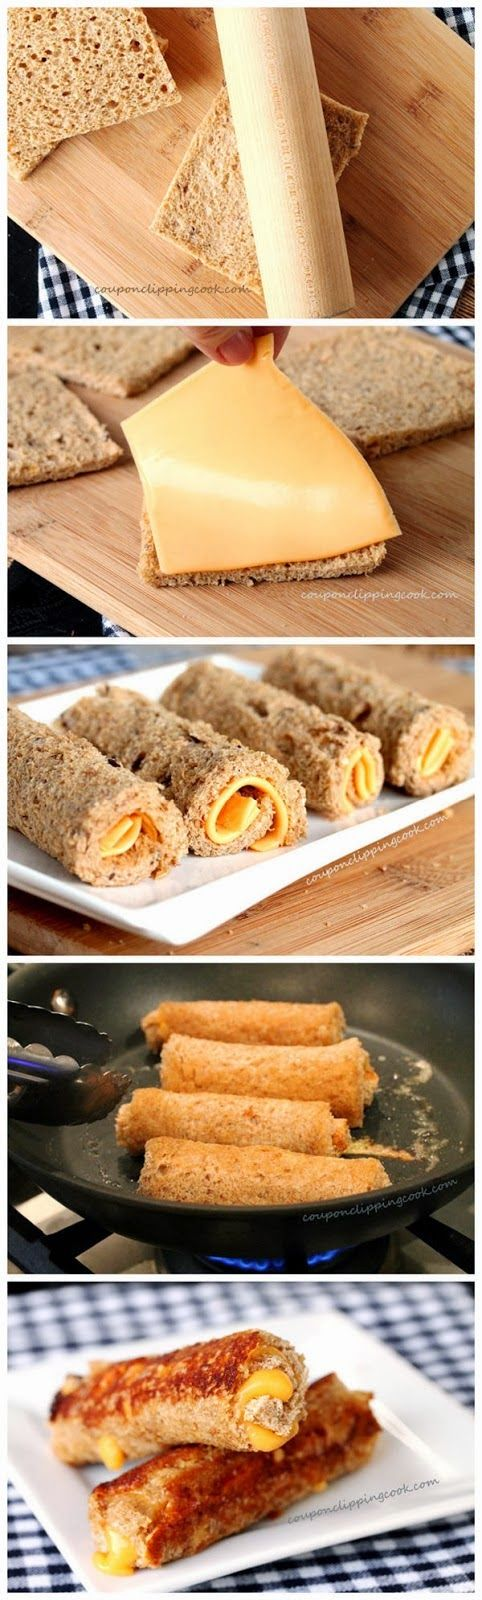 Grilled Cheese Roll Ups! What a cute idea to try with Martin's Whole Wheat Potato Bread!